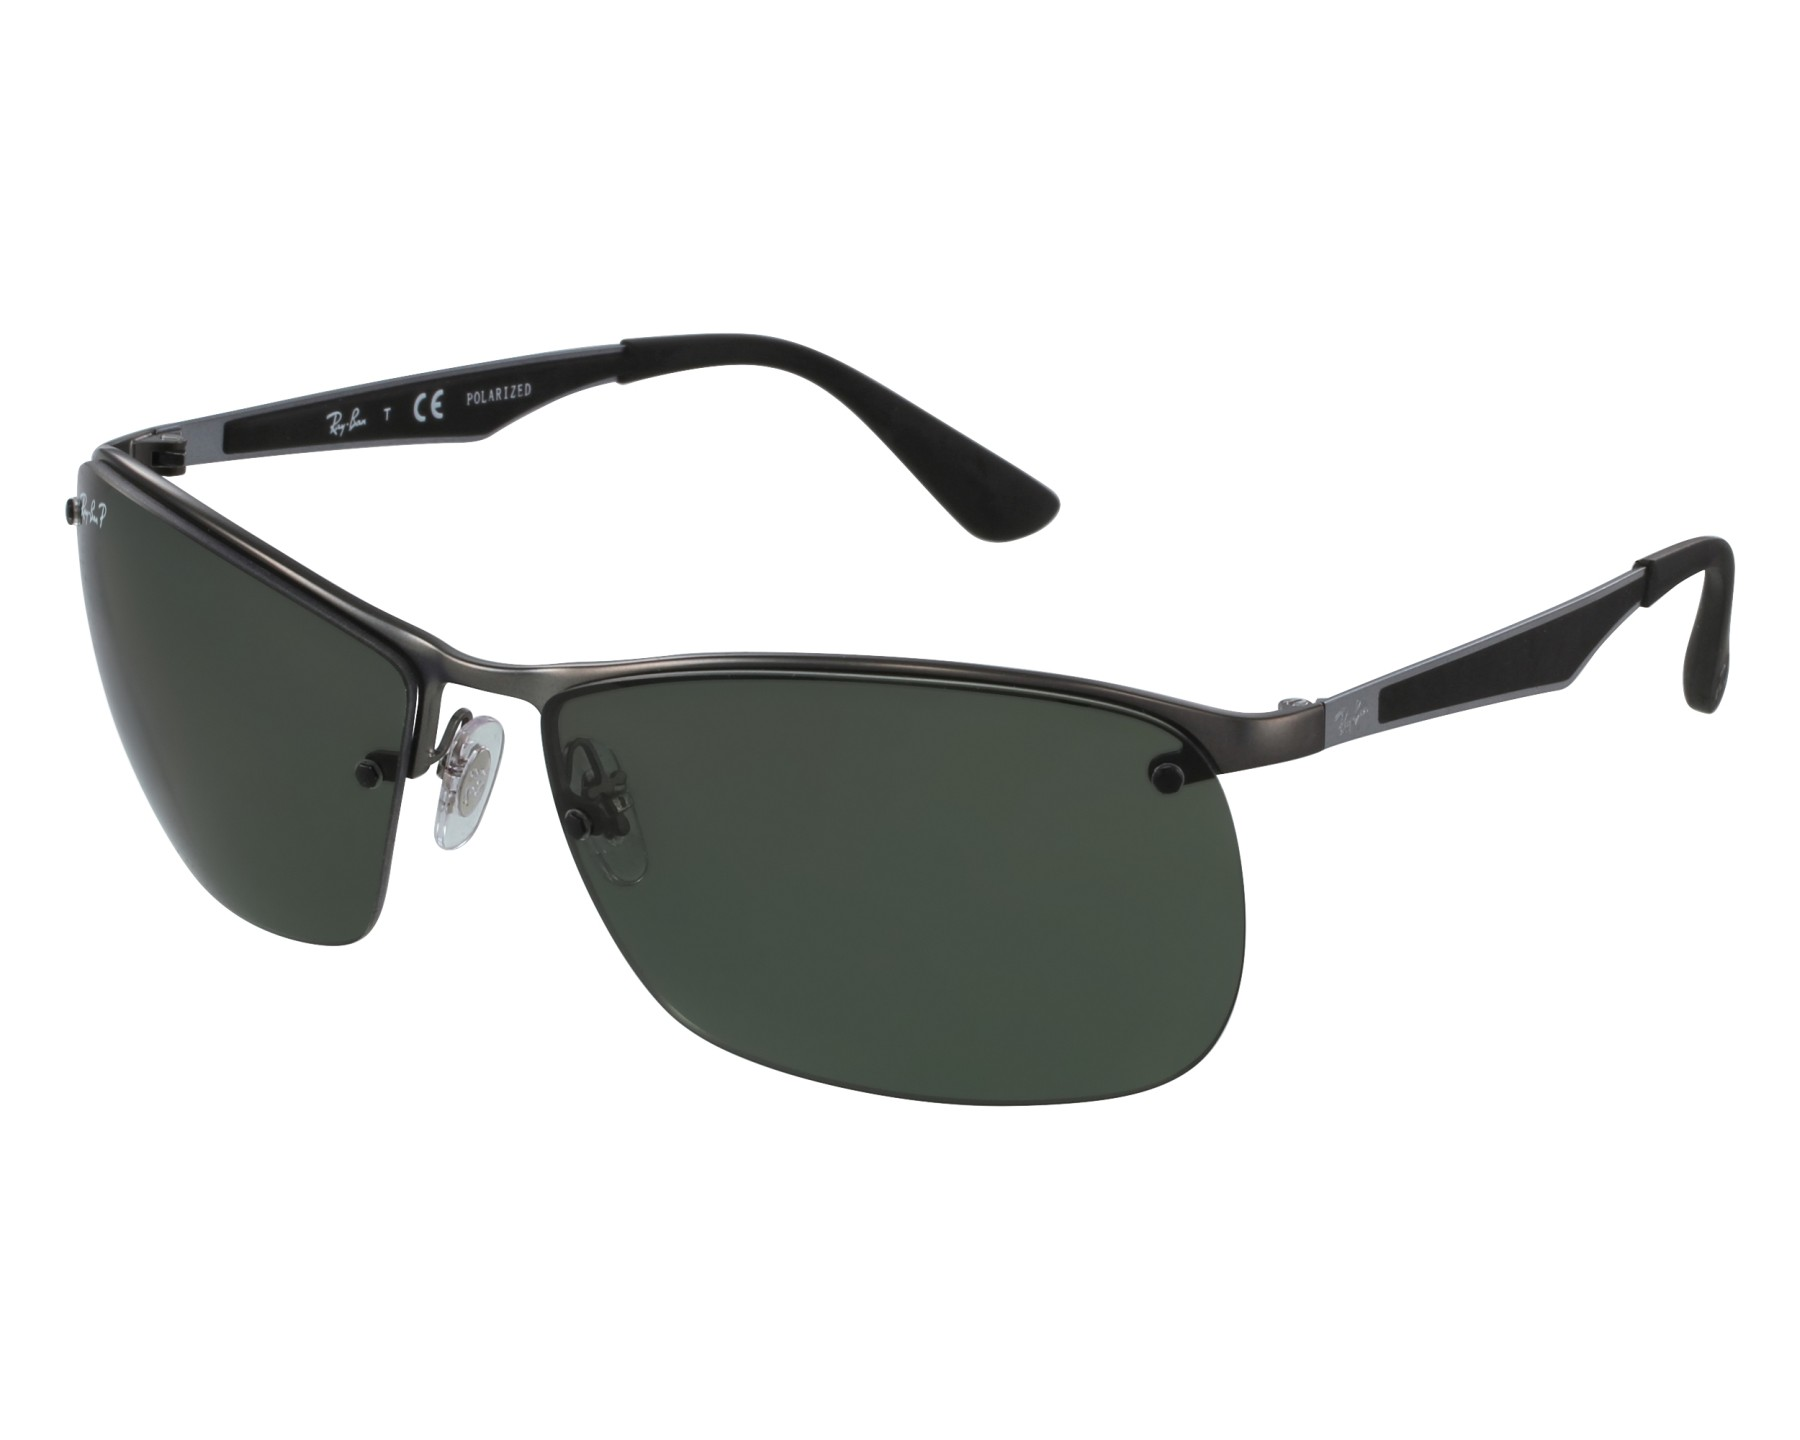 1bd8aafce5e thumbnail Sunglasses Ray-Ban RB-3550 029 9A - Grey Black front view